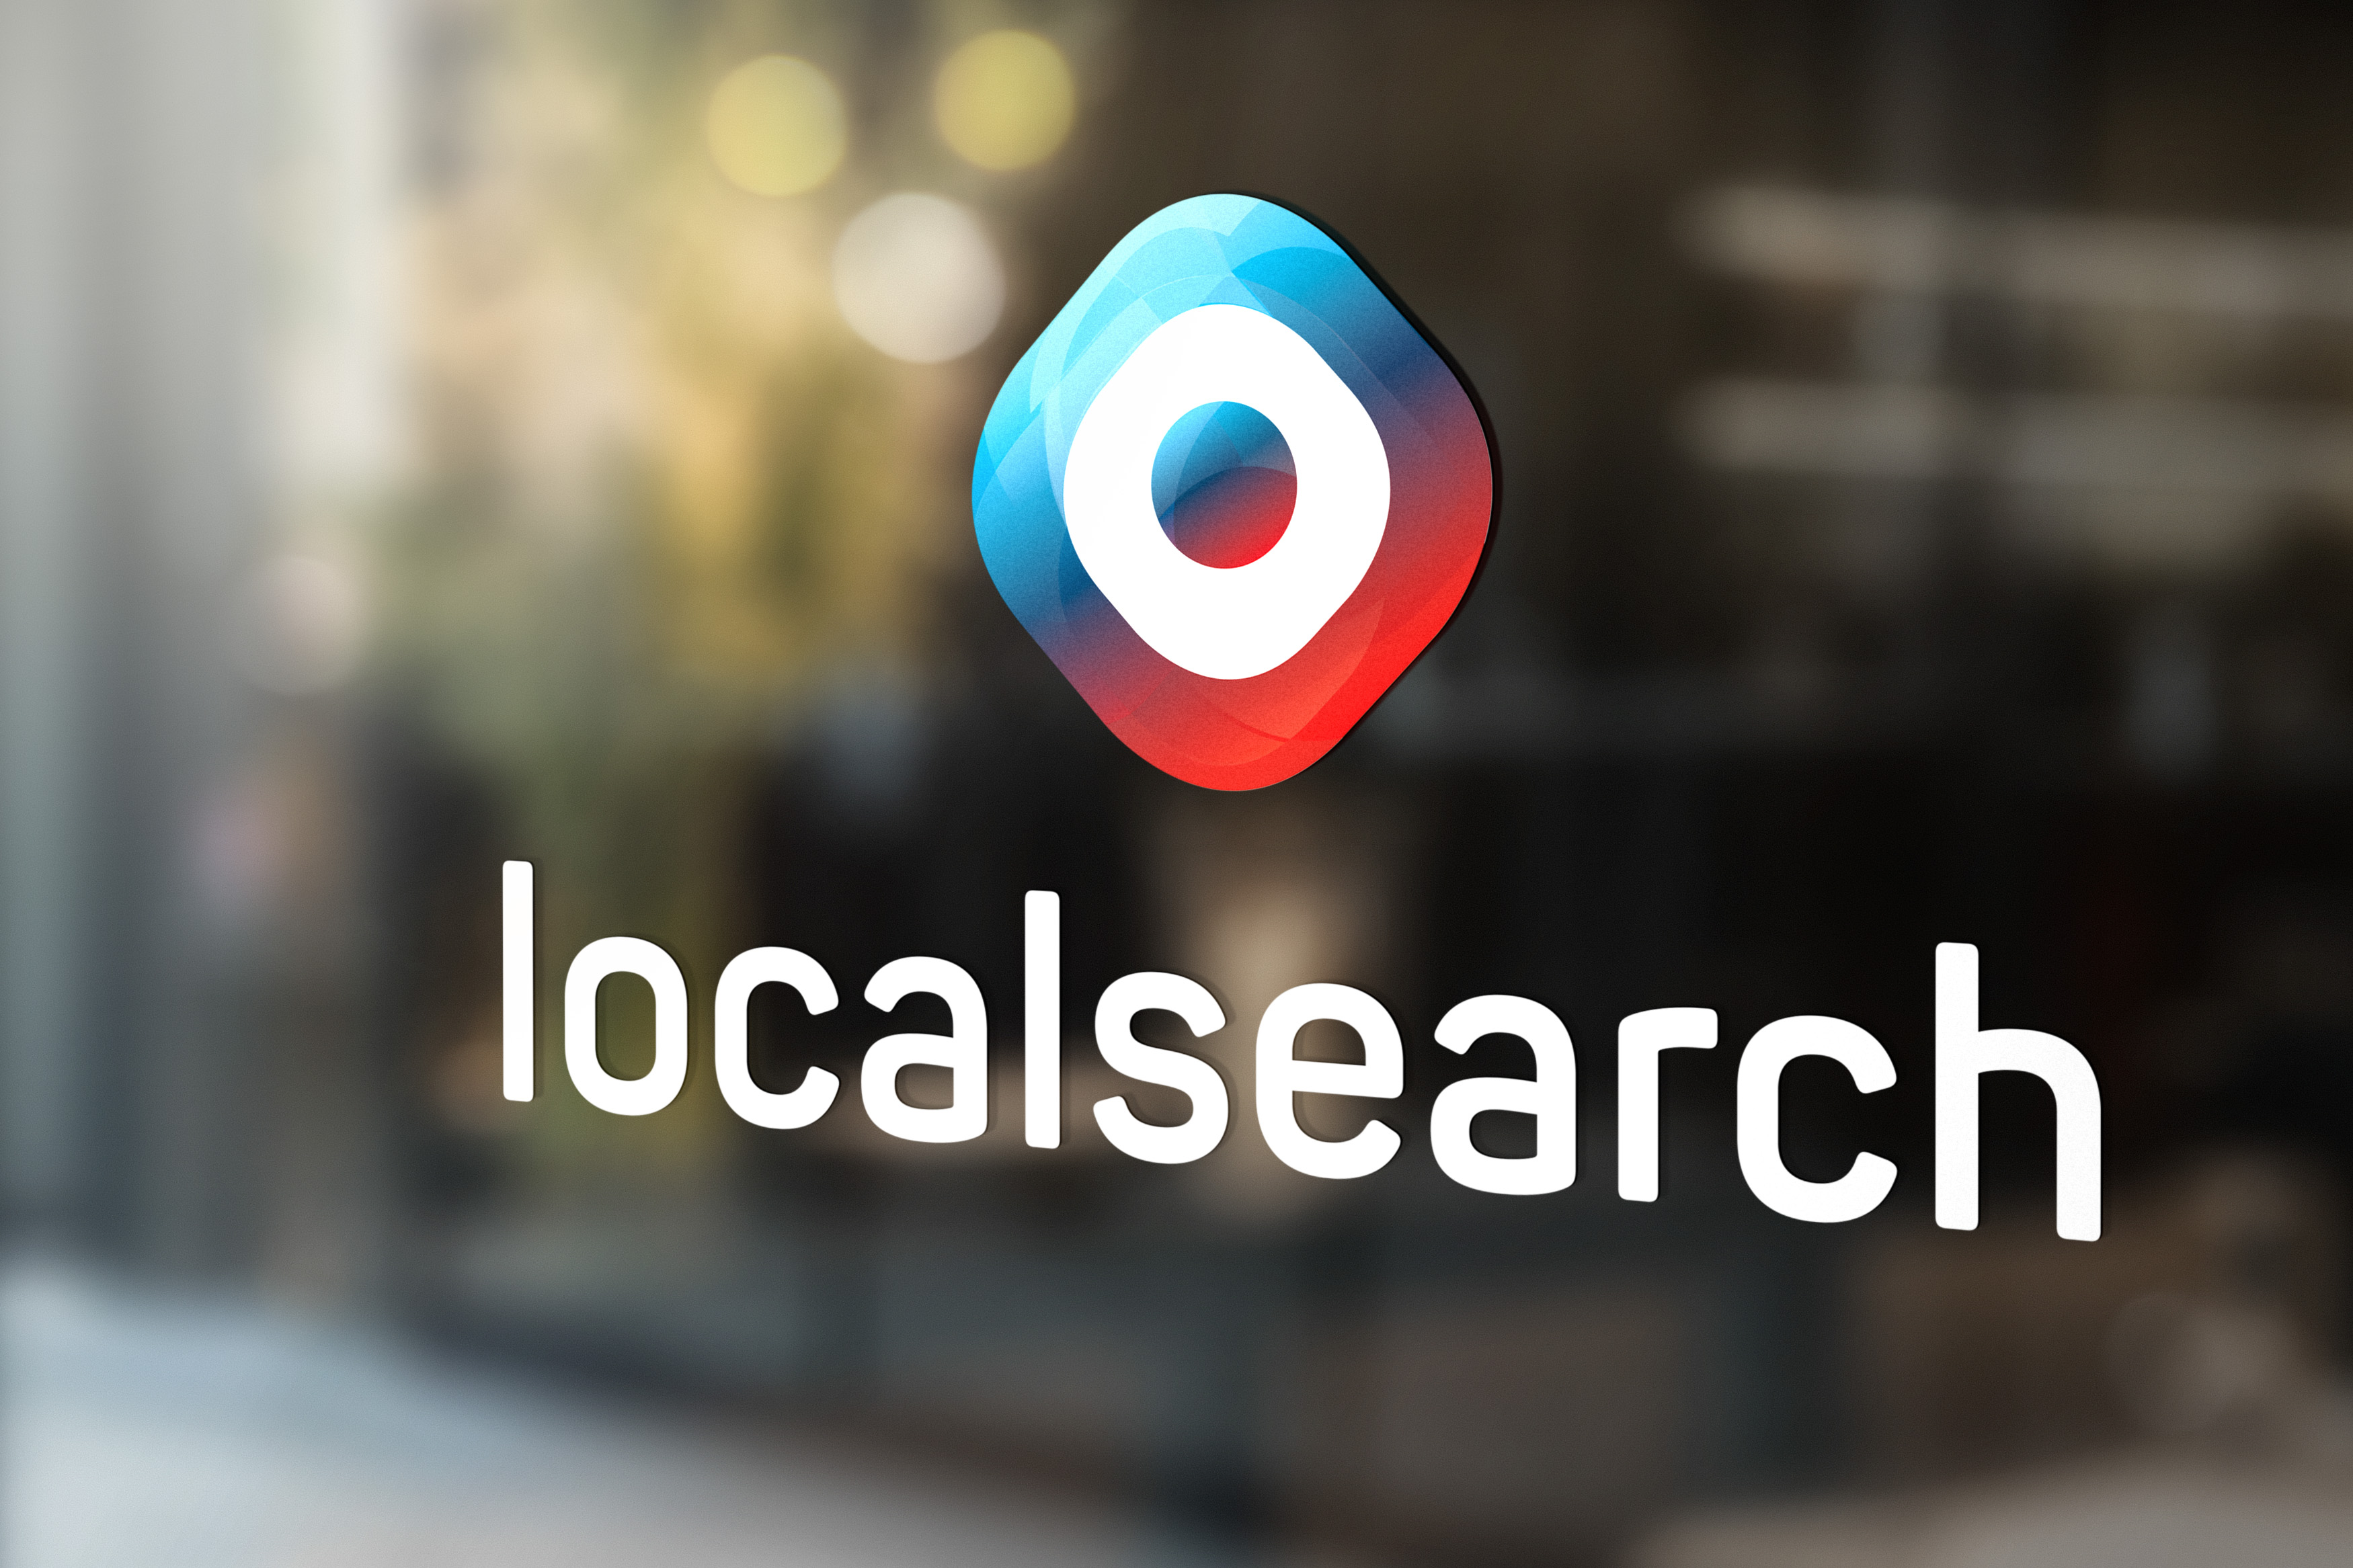 localsearch logo 2